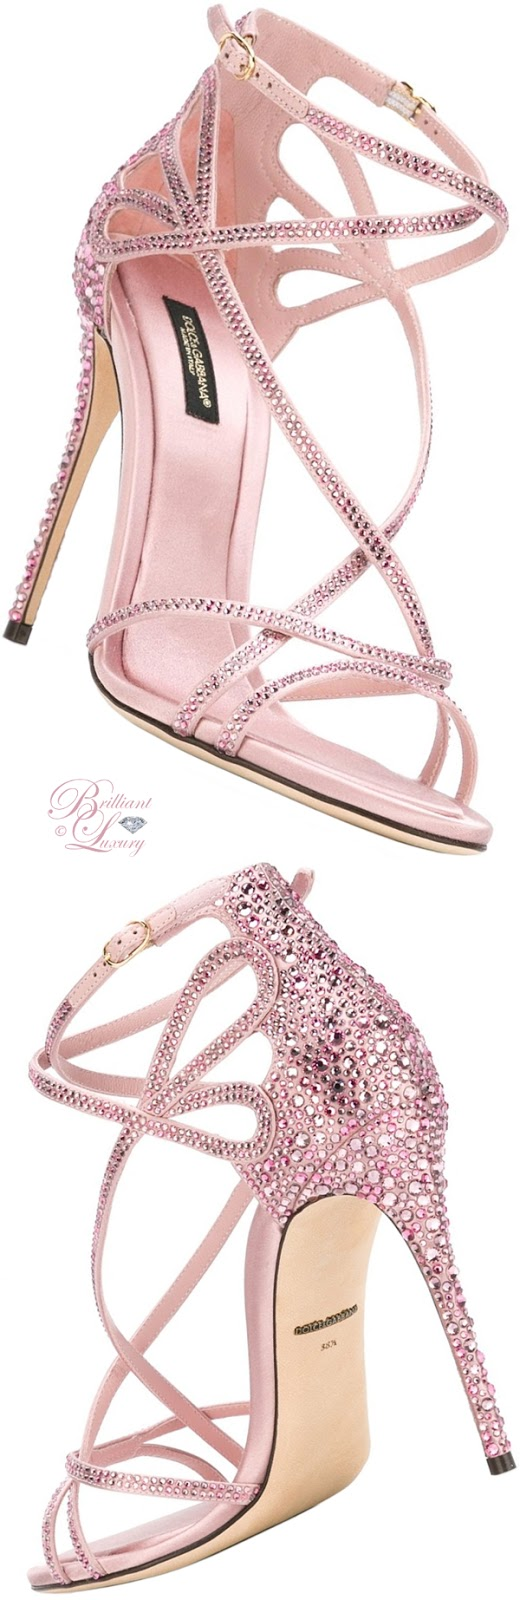 Brilliant Luxury ♦ Dolce & Gabbana Keira Sandals